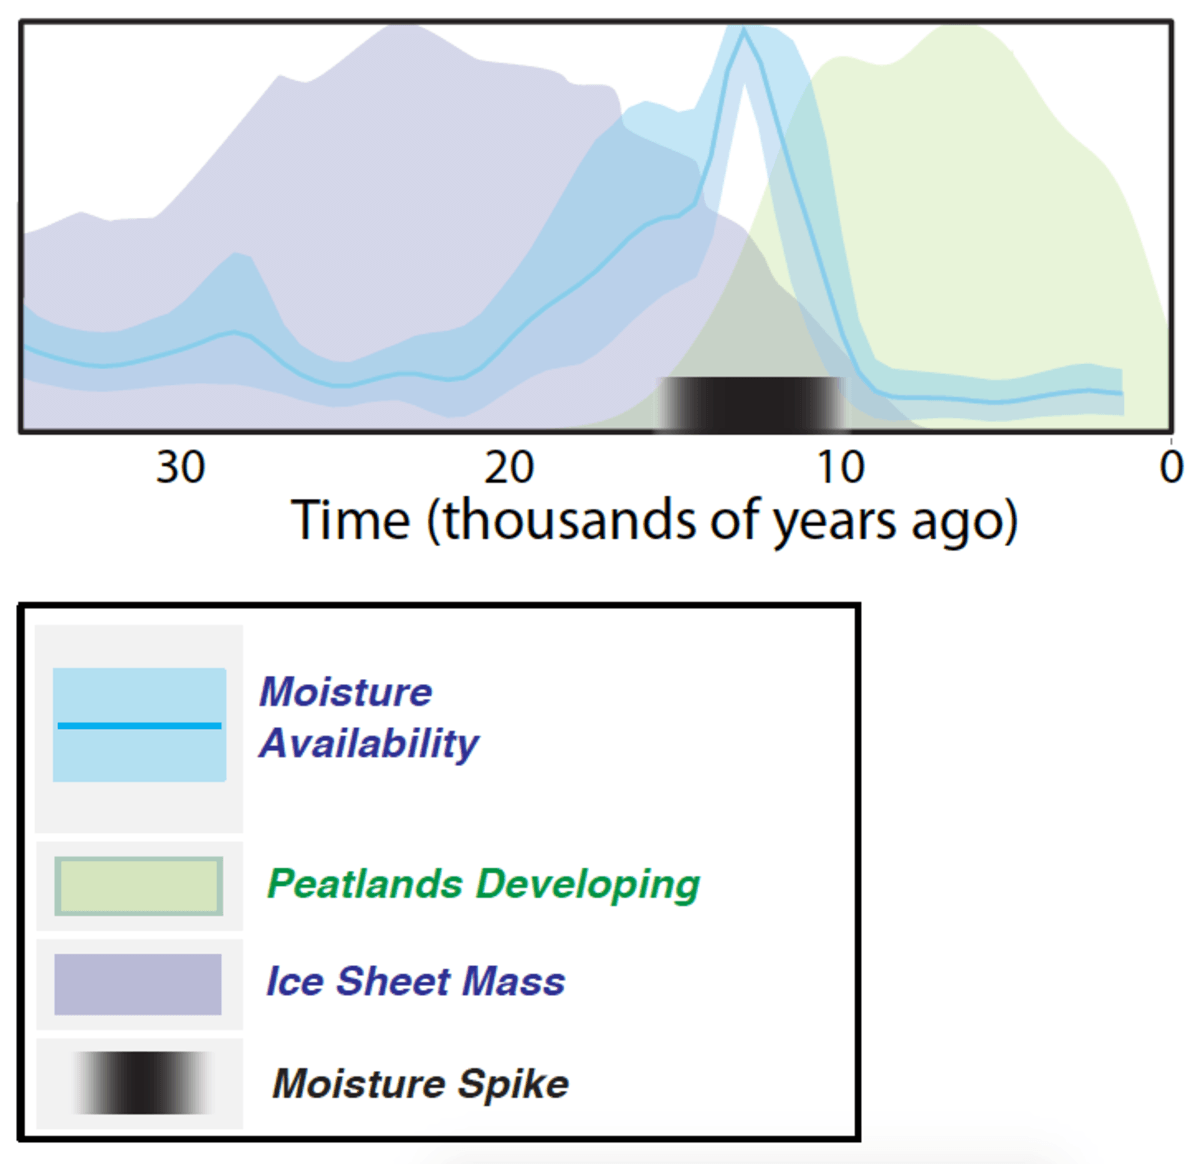 The study shows that a peak in moisture occurred between the time of the ice sheets melting, and the invasion of new vegetation types such as peatlands (data shown from Canada and northern United States).